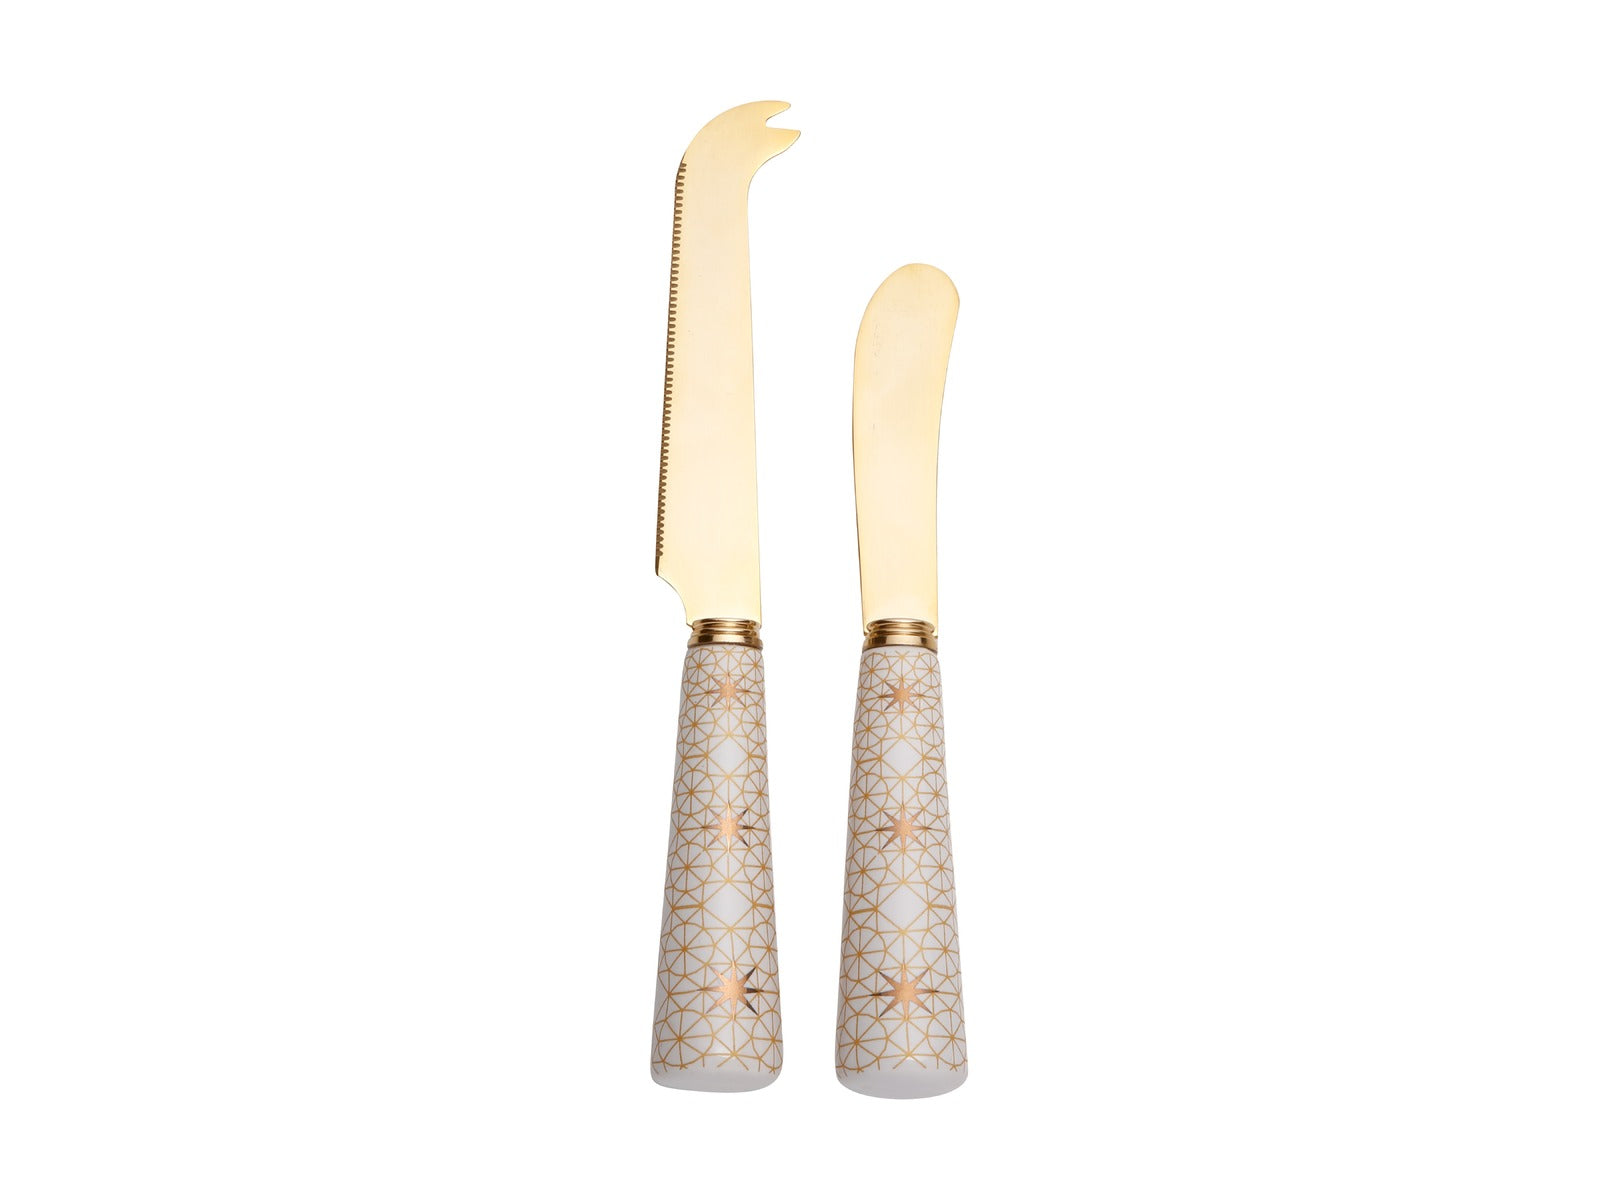 Maxwell & Williams: Starry Night Spreader & Cheese Knife Set